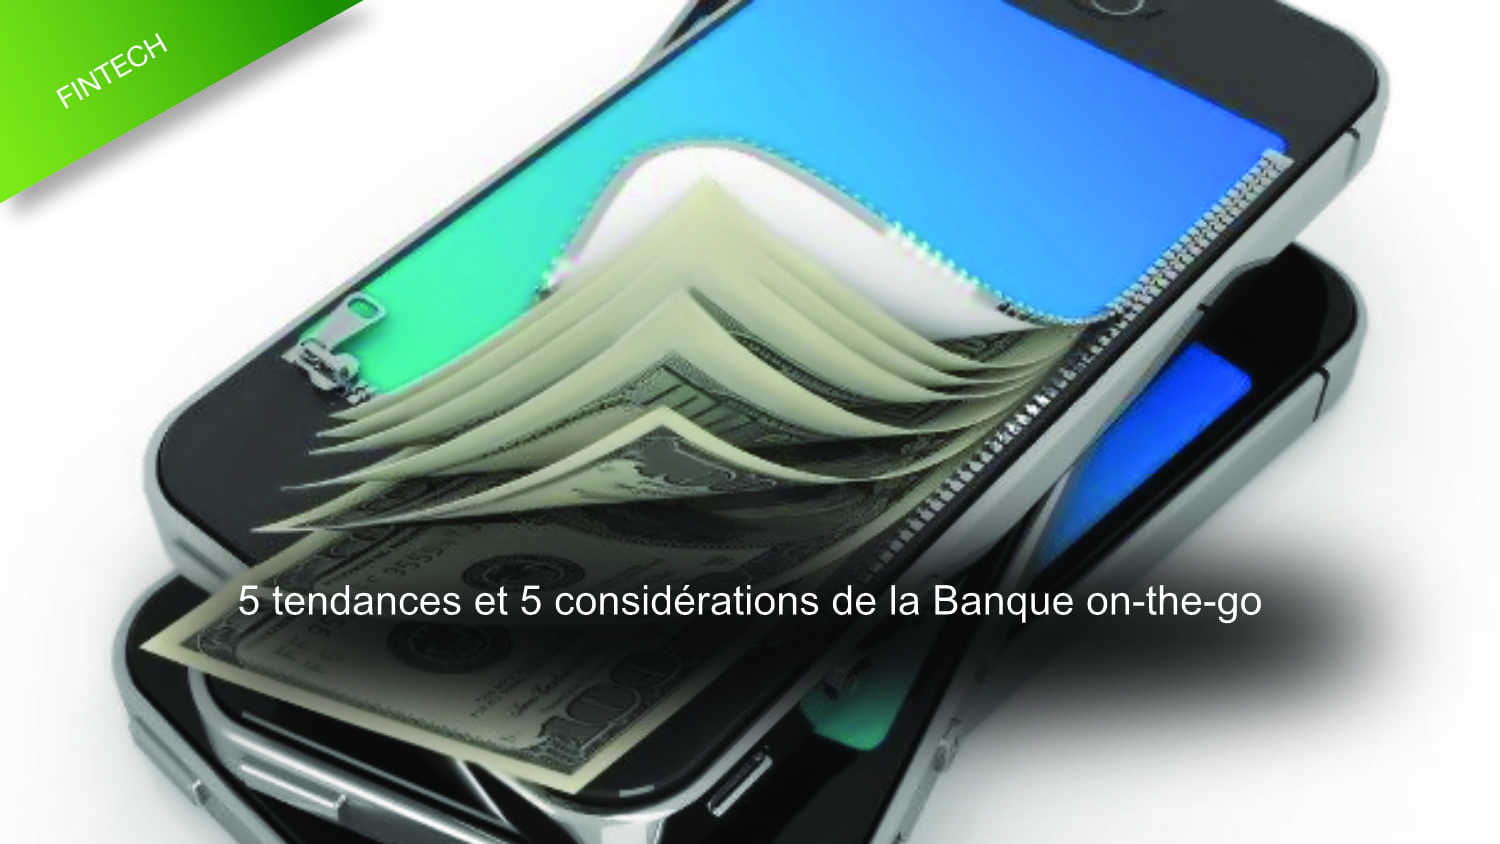 banque on-the-go